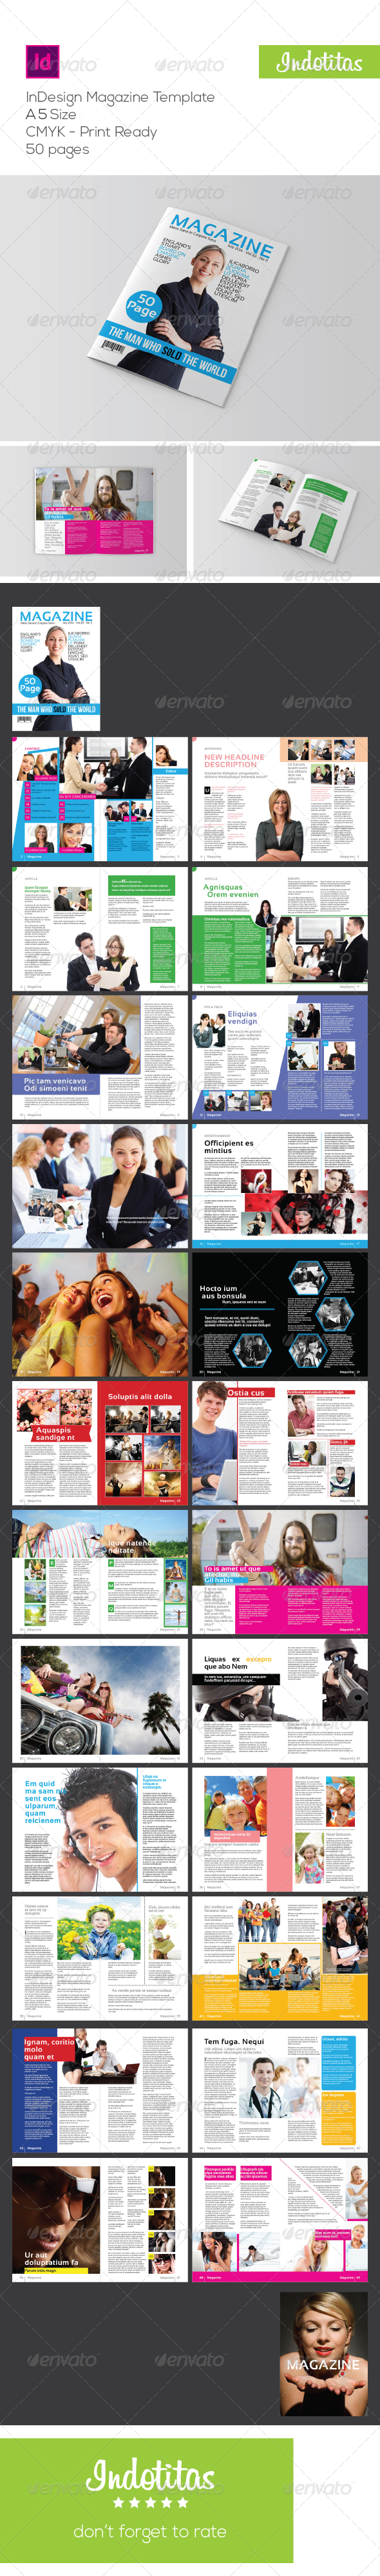 A5 InDesign Magazine Template - Magazines Print Templates